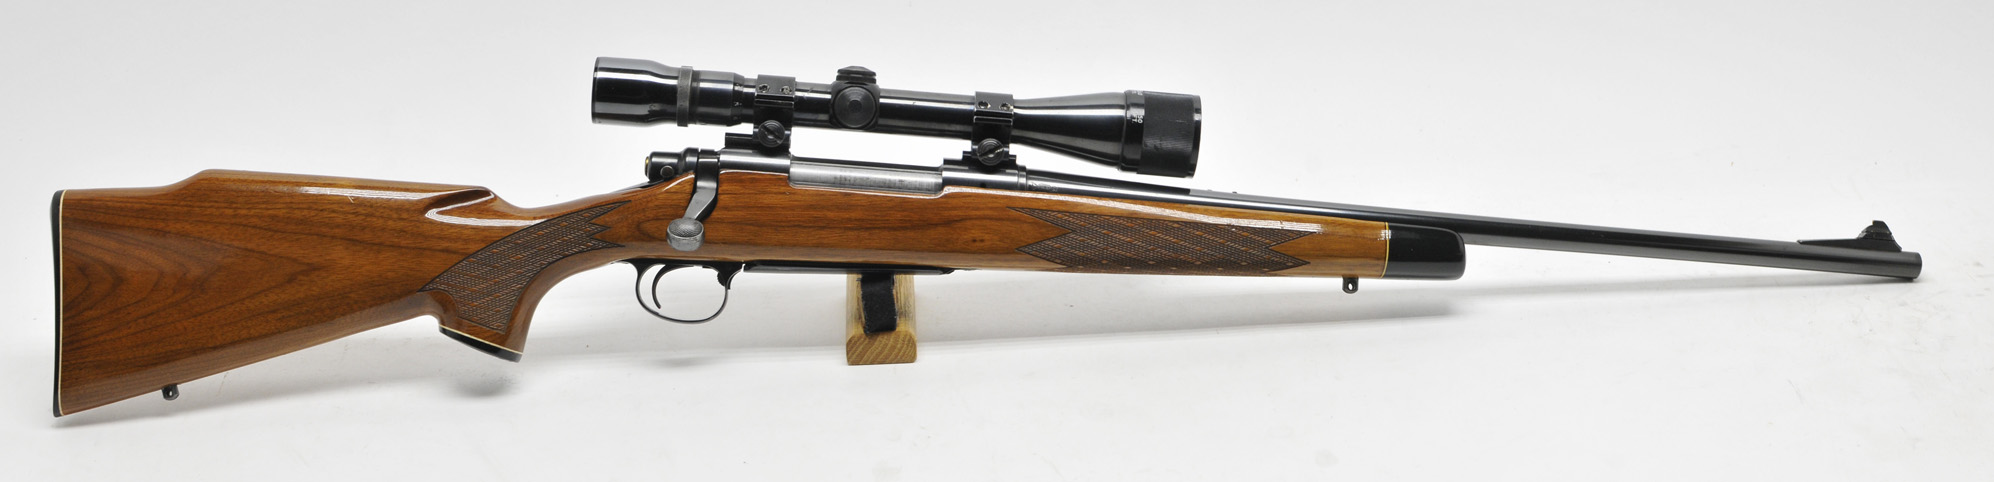 remington 700 bdl 30-06 custom shop inc